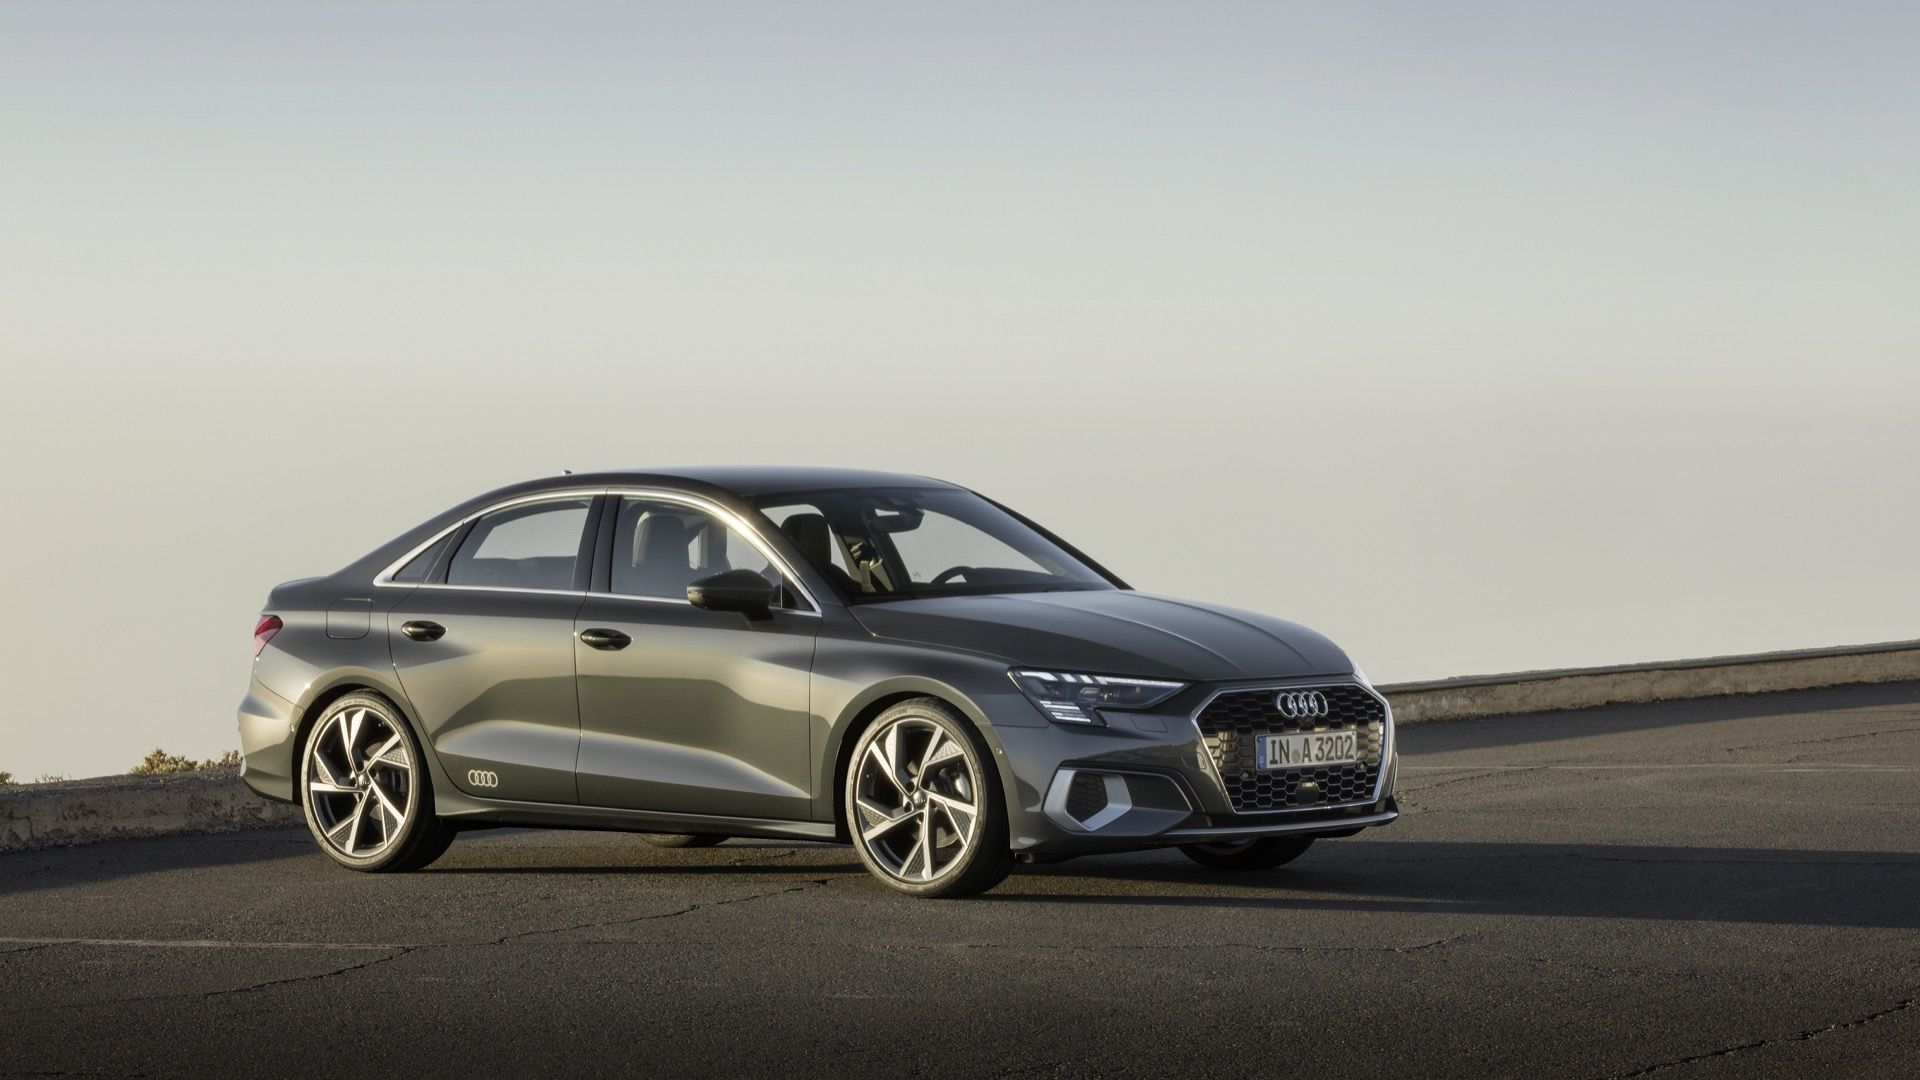 2021 Audi A3 Sedan Shows New Design, Adds Mild Hybrid ...